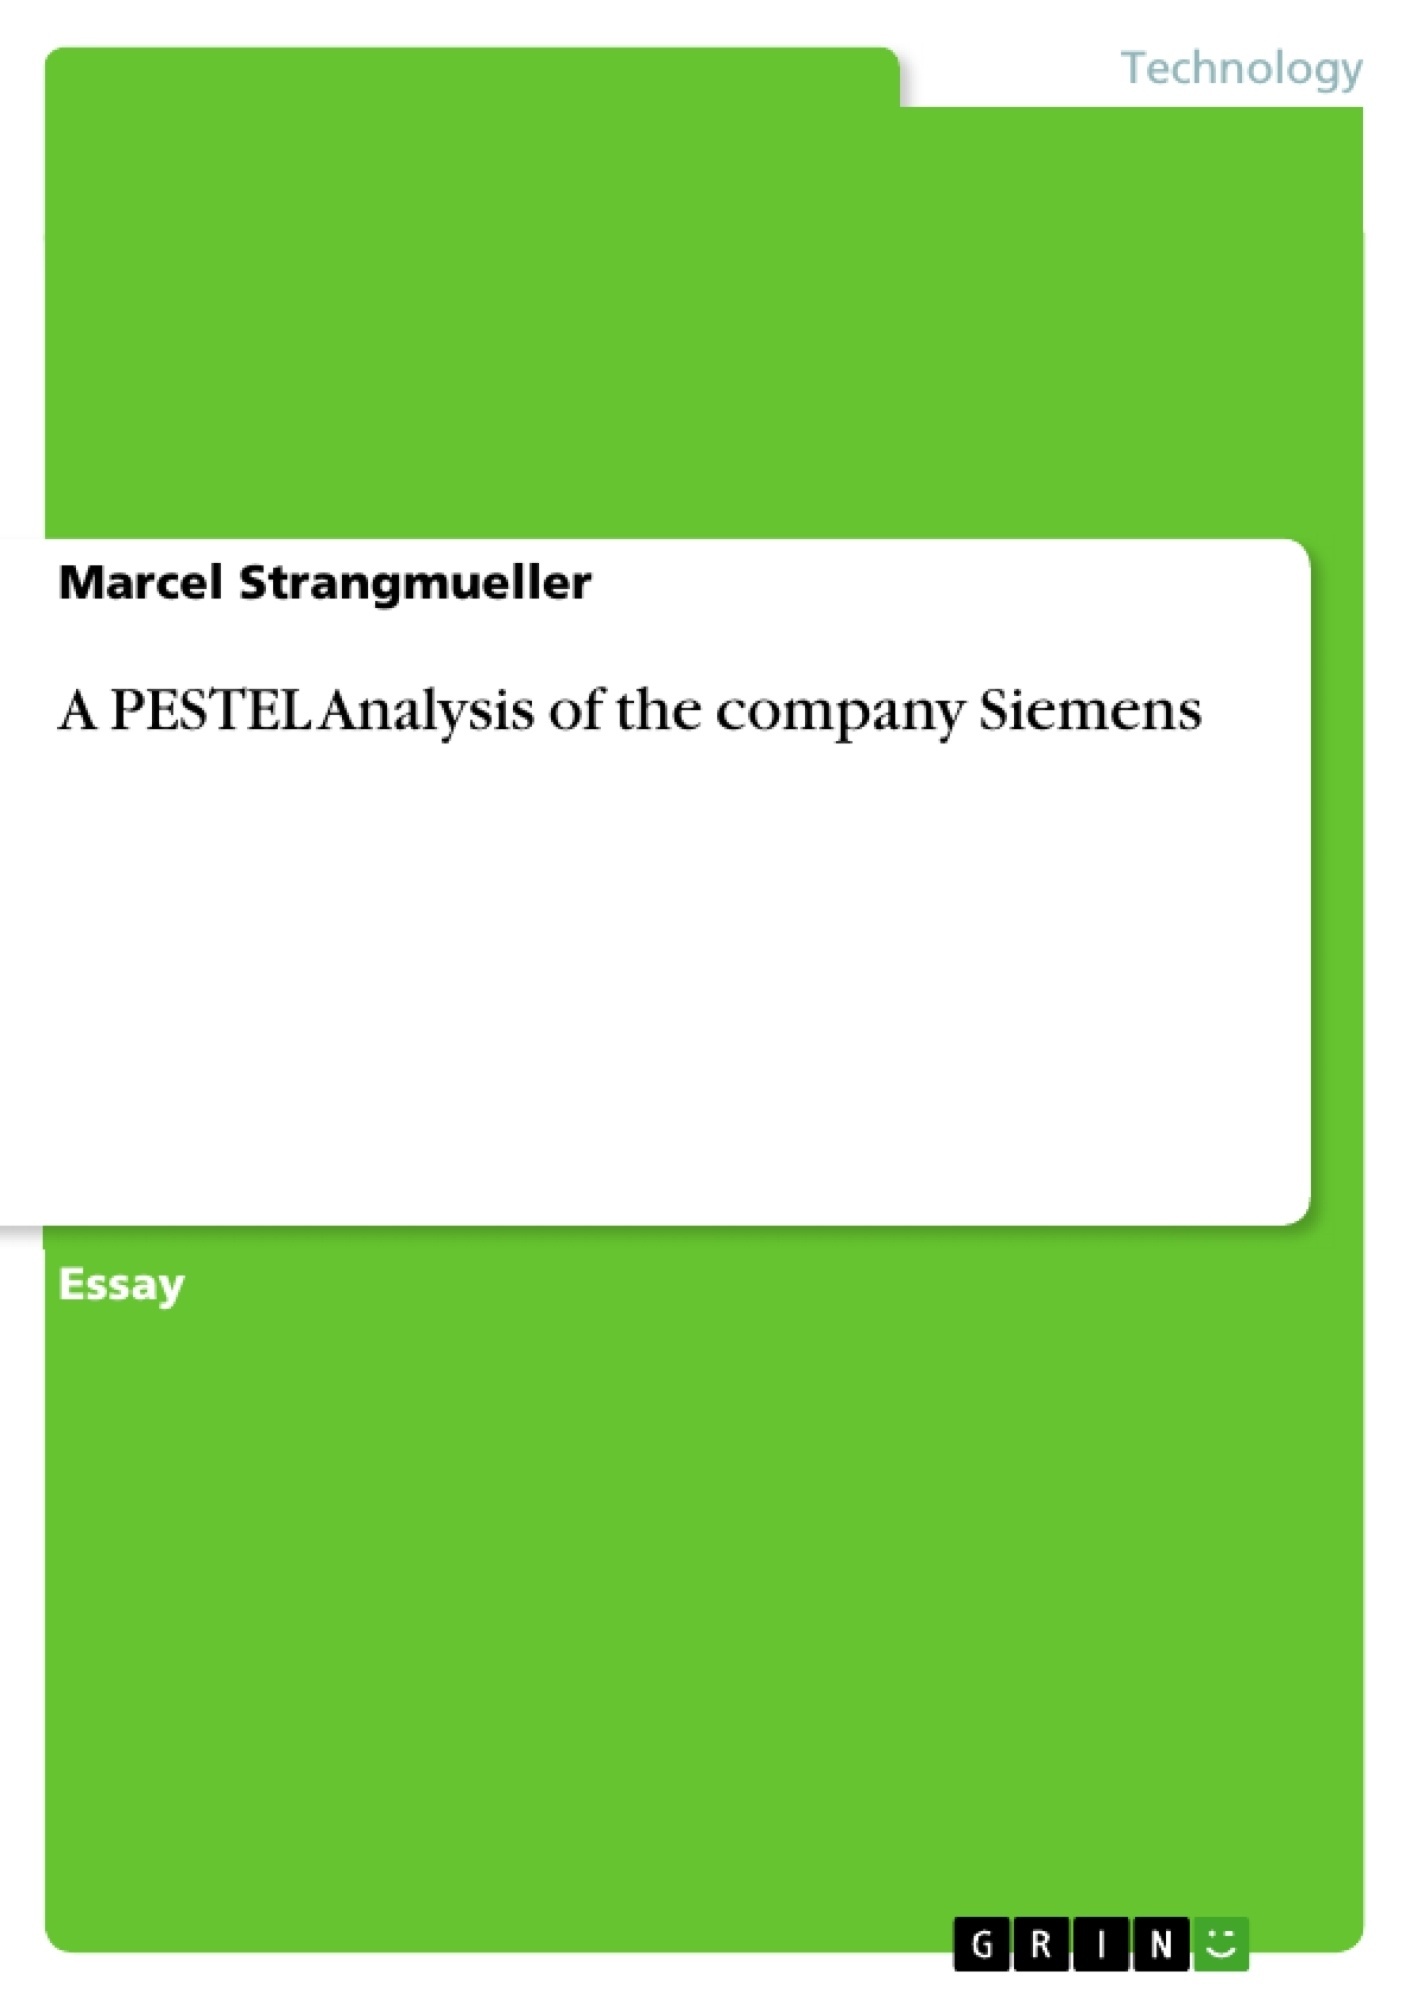 GRIN - A PESTEL Analysis of the company Siemens